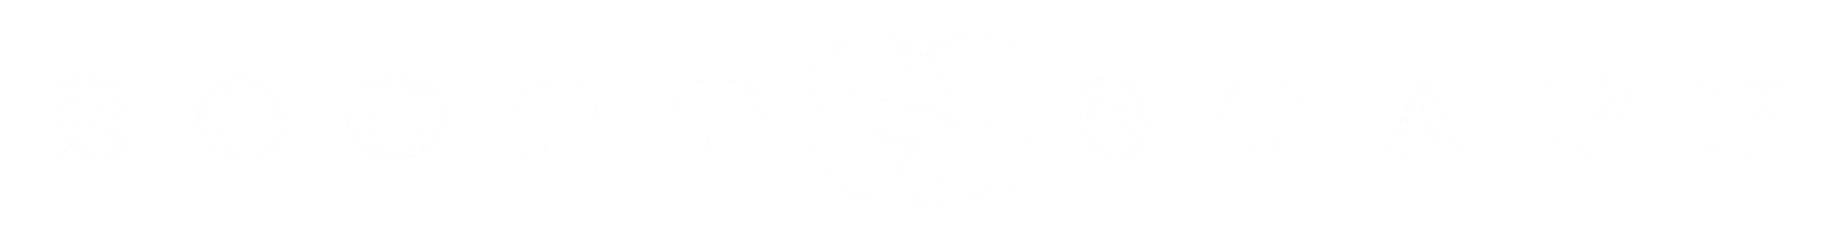 Scott Stapp Logo White